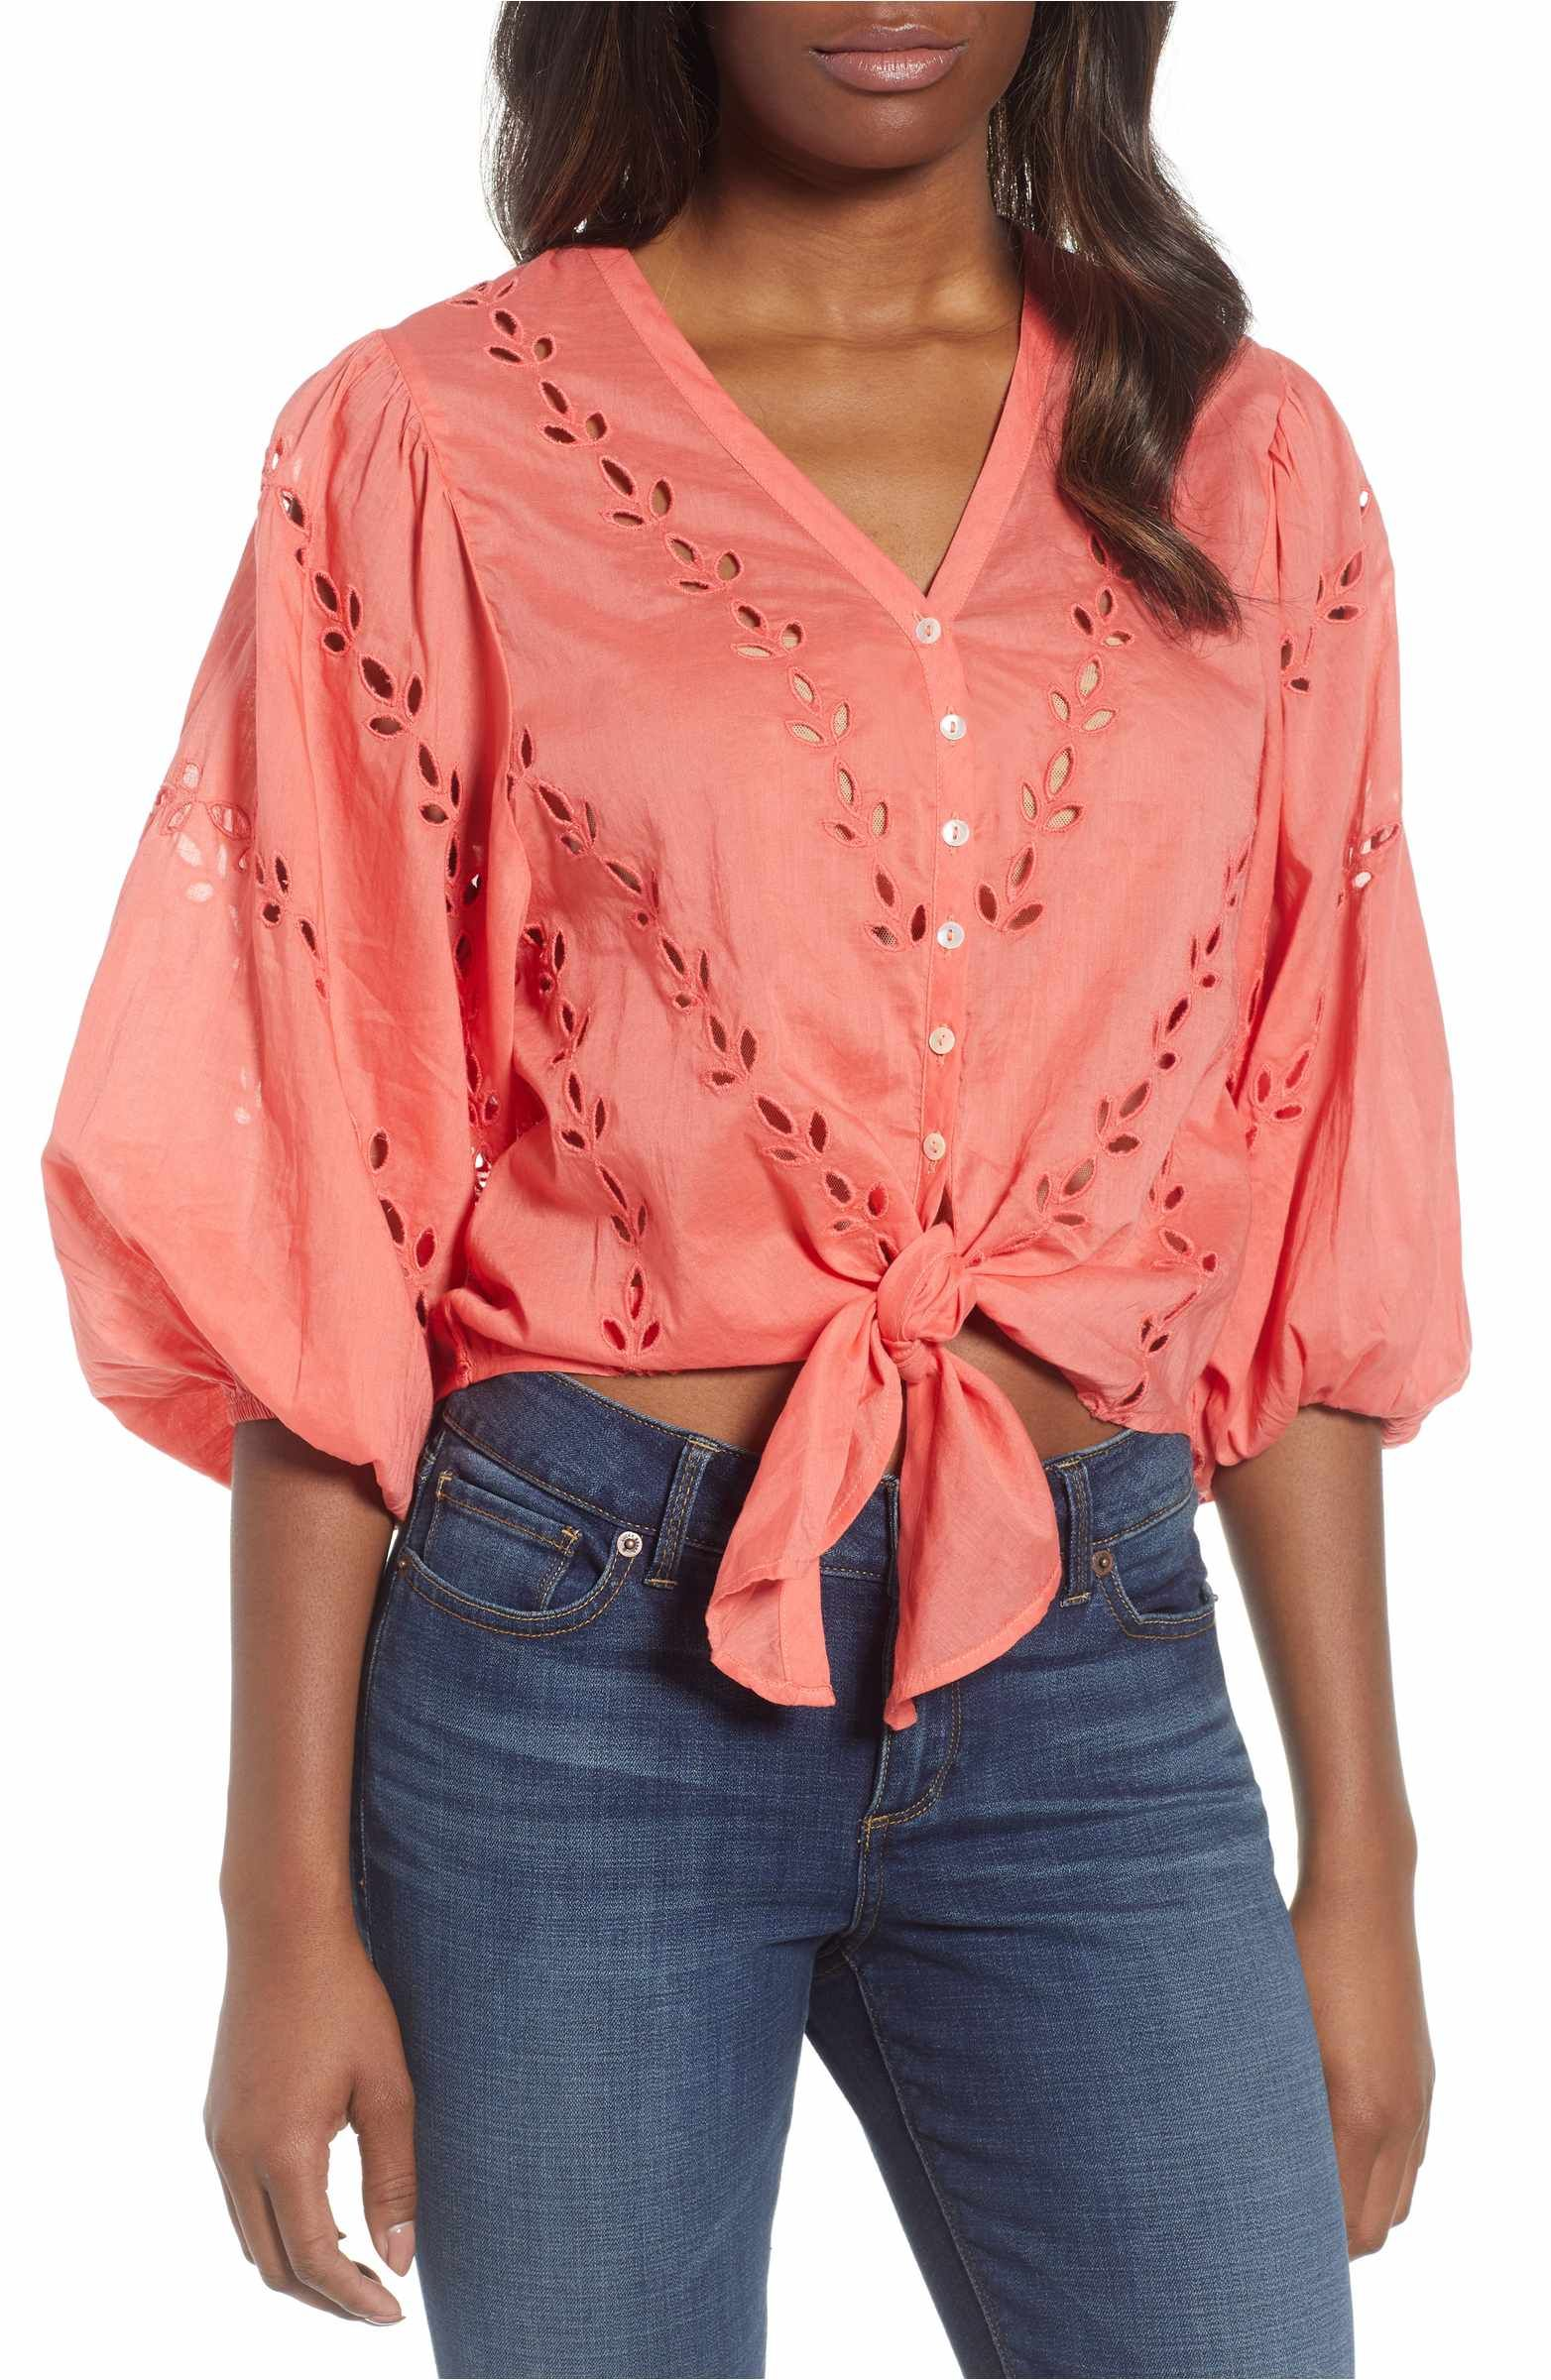 Eyelet Tie Front Cotton Peasant Blouse Peasant Blouse Lucky Brand